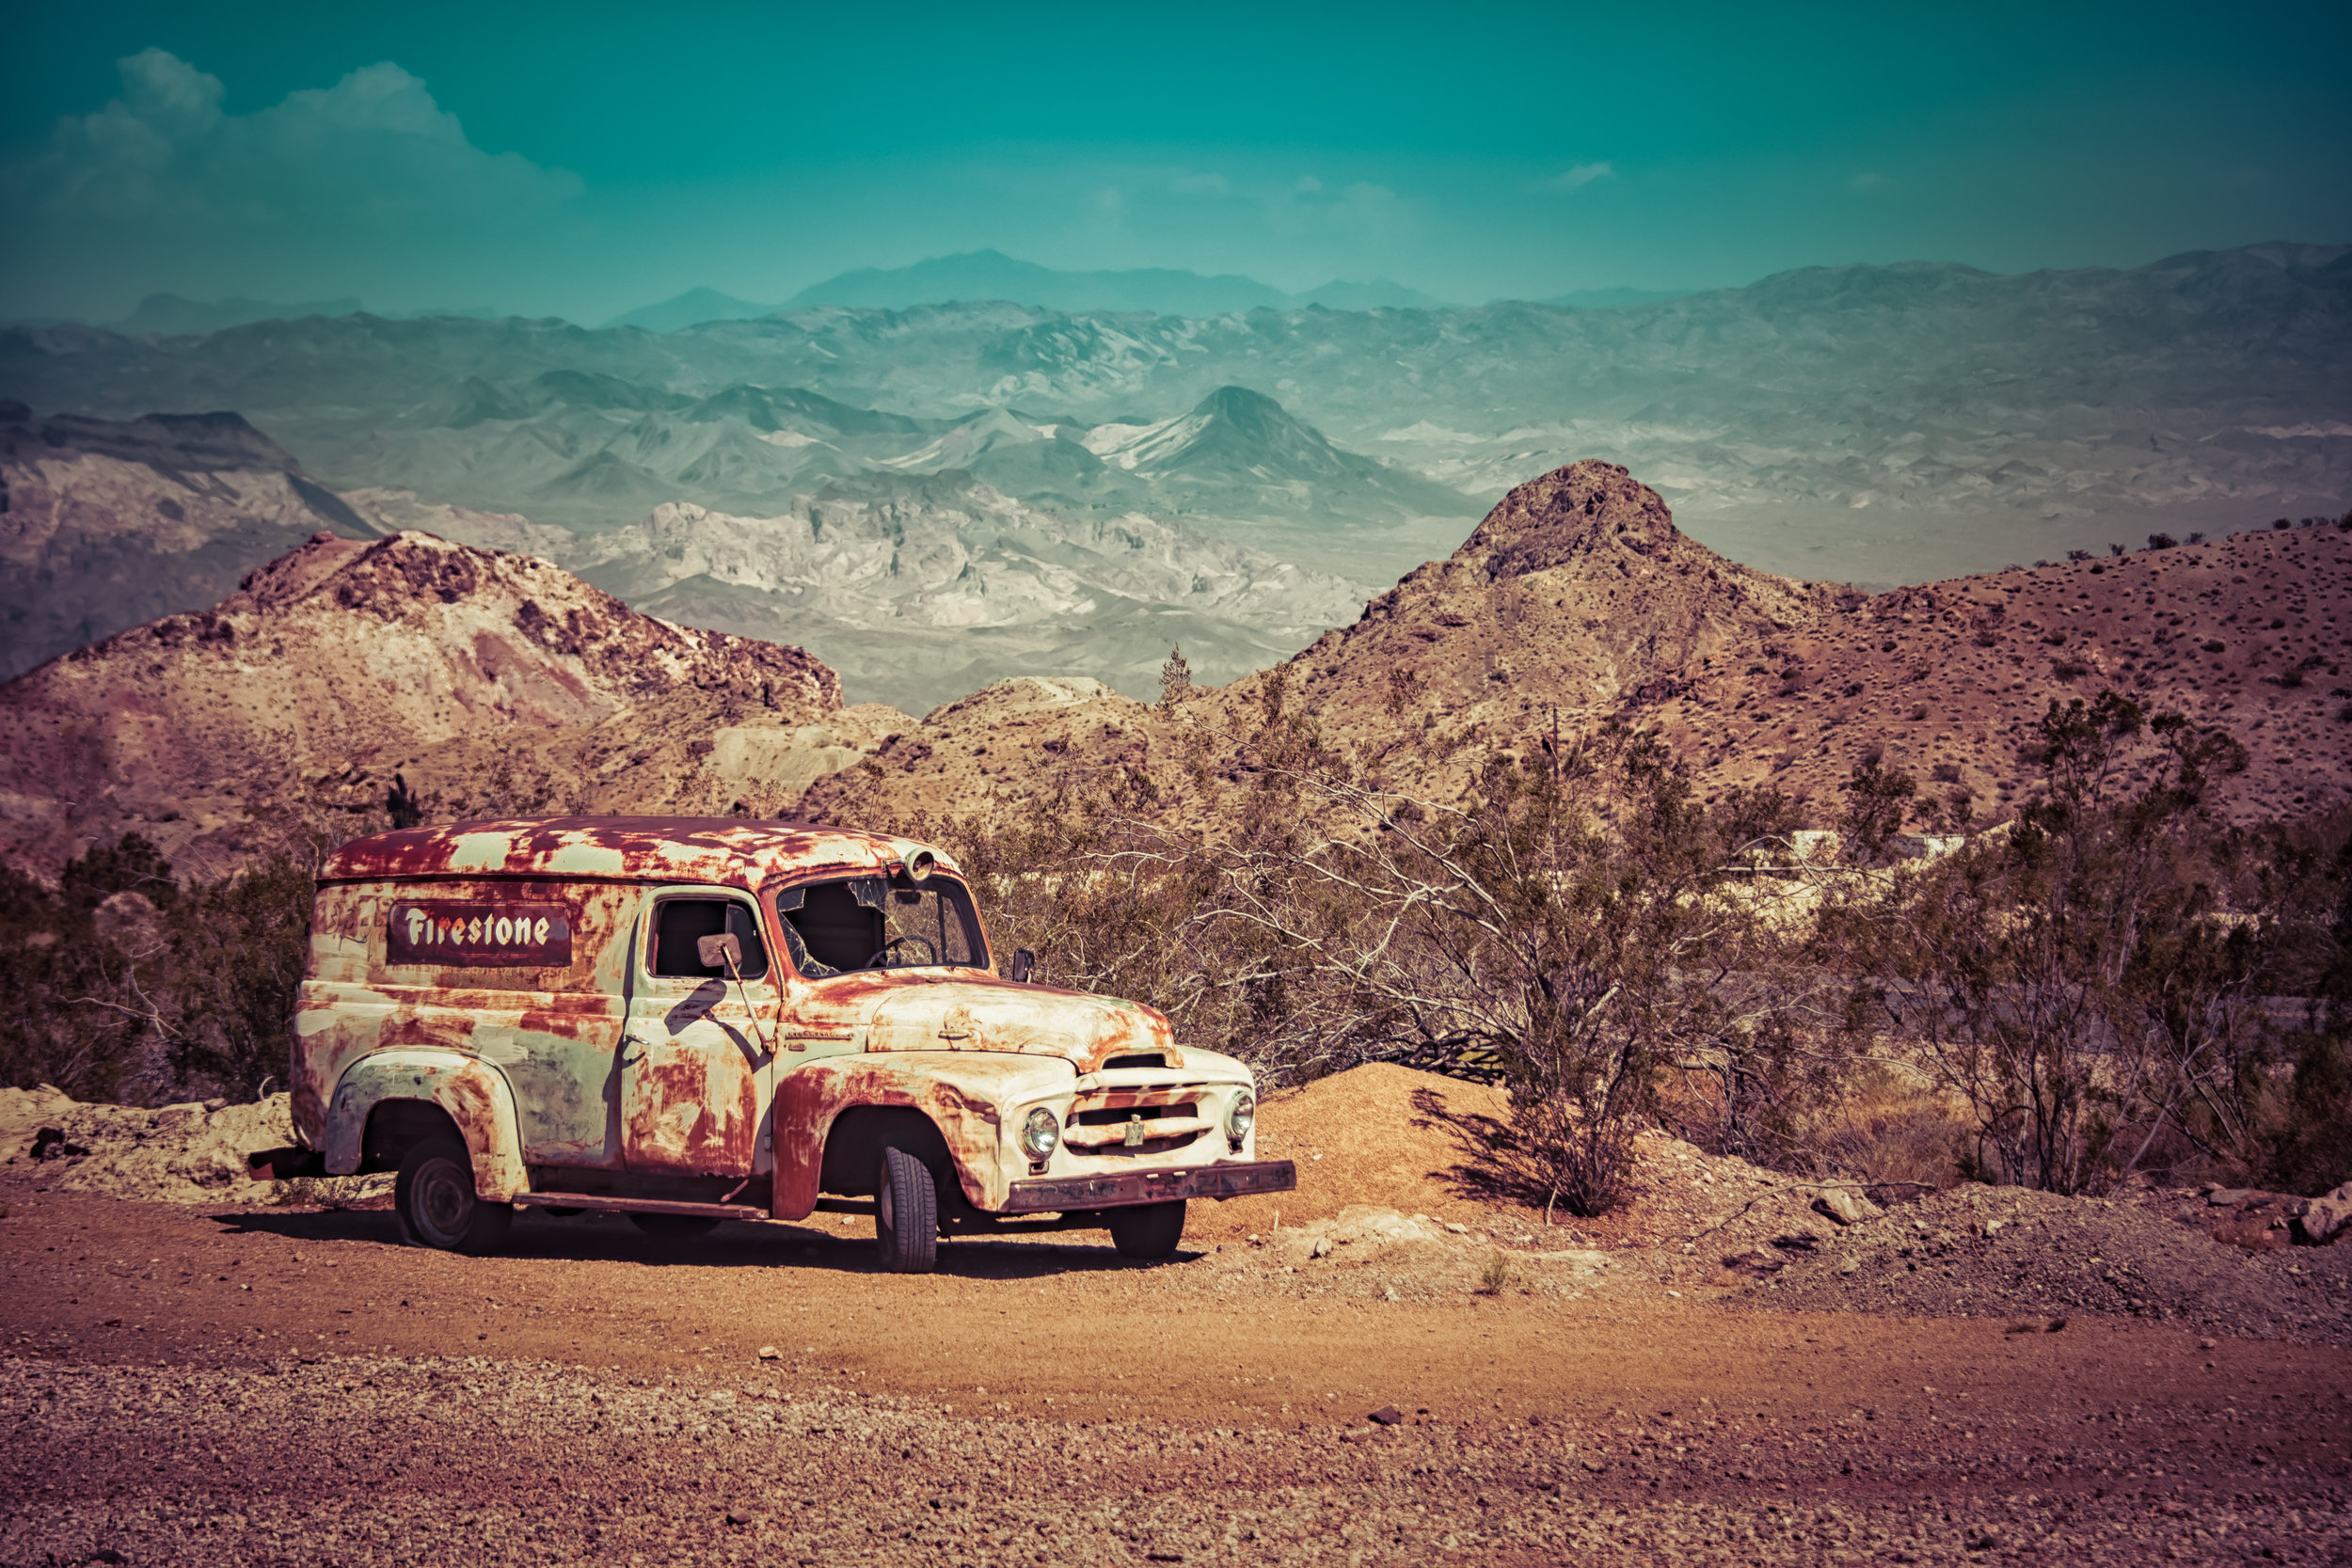 Old Truck in the Mountains